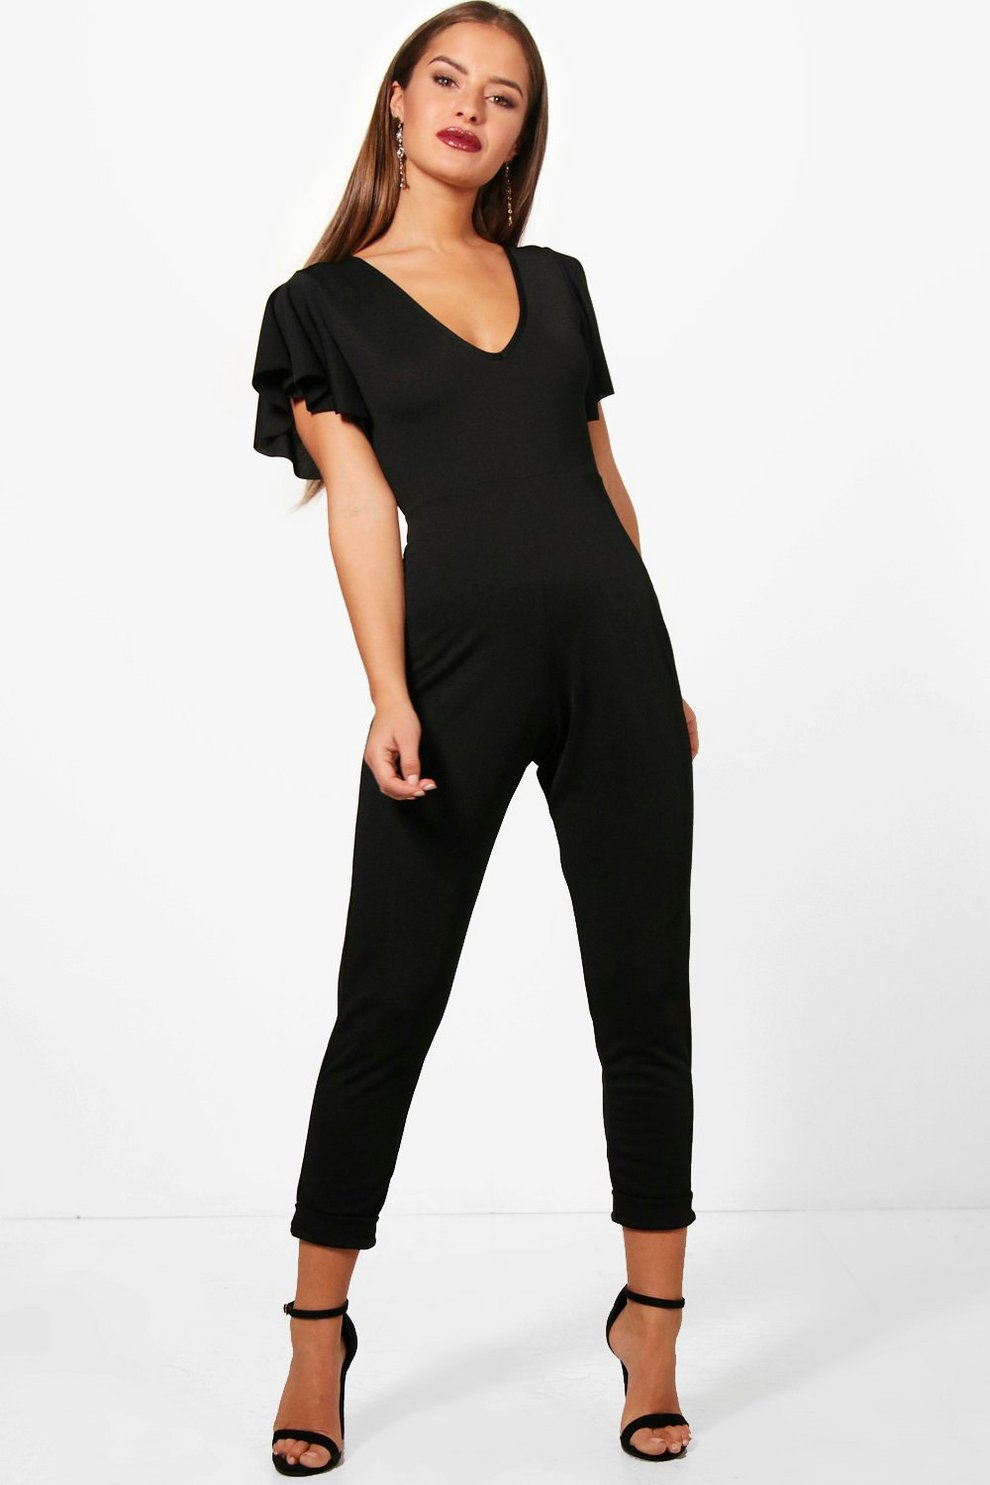 Boohoo Petite Plunge Neck Frill Sleeve Jumpsuit Free Shipping Collections High Quality For Sale Buy Cheap Shop Offer LFm5Xr